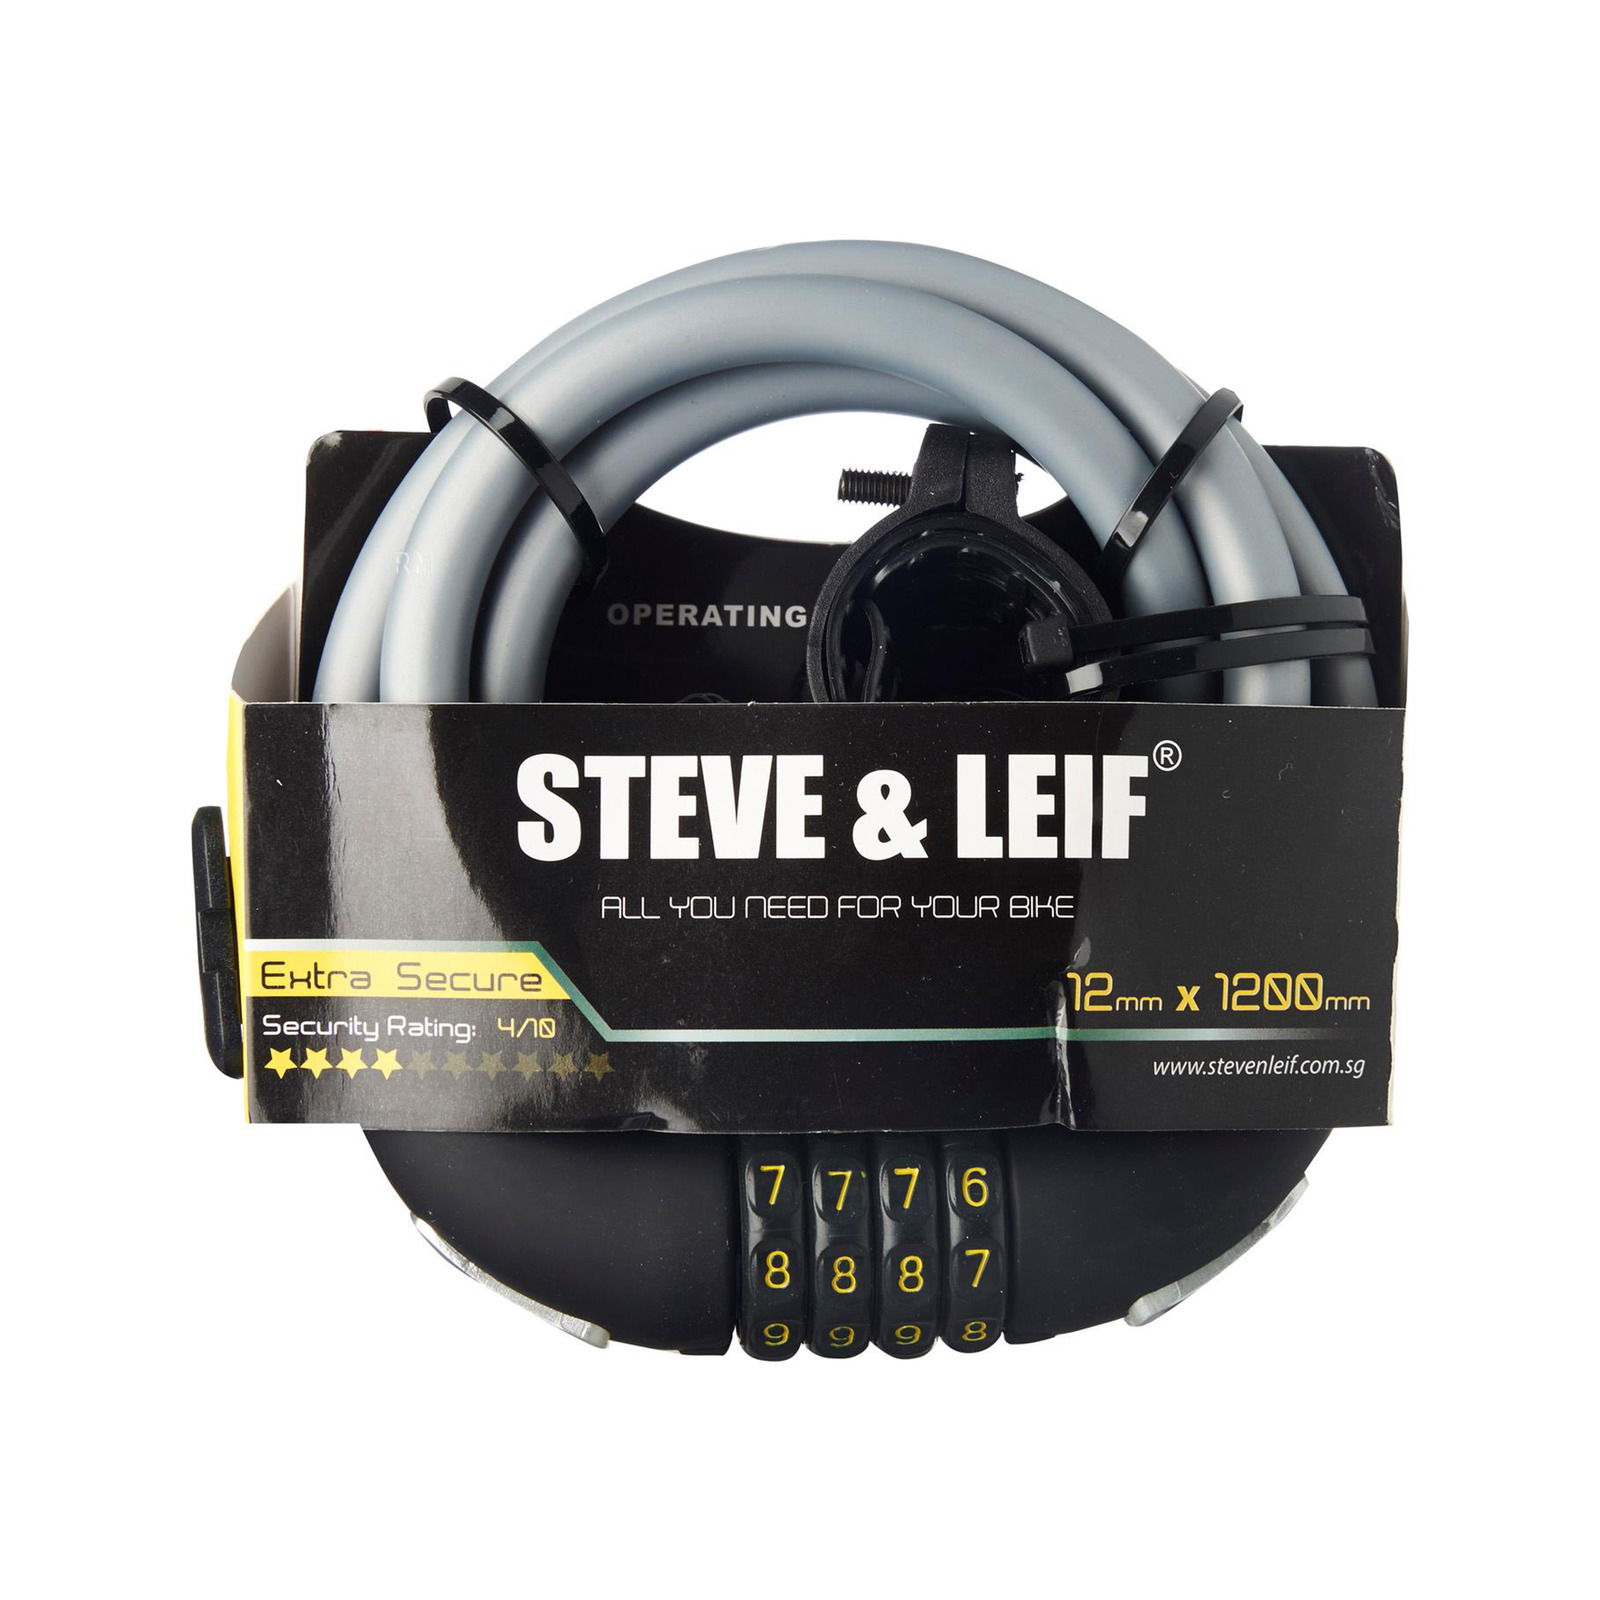 Steve & Leif Bicycle Combination Lock With Bracket